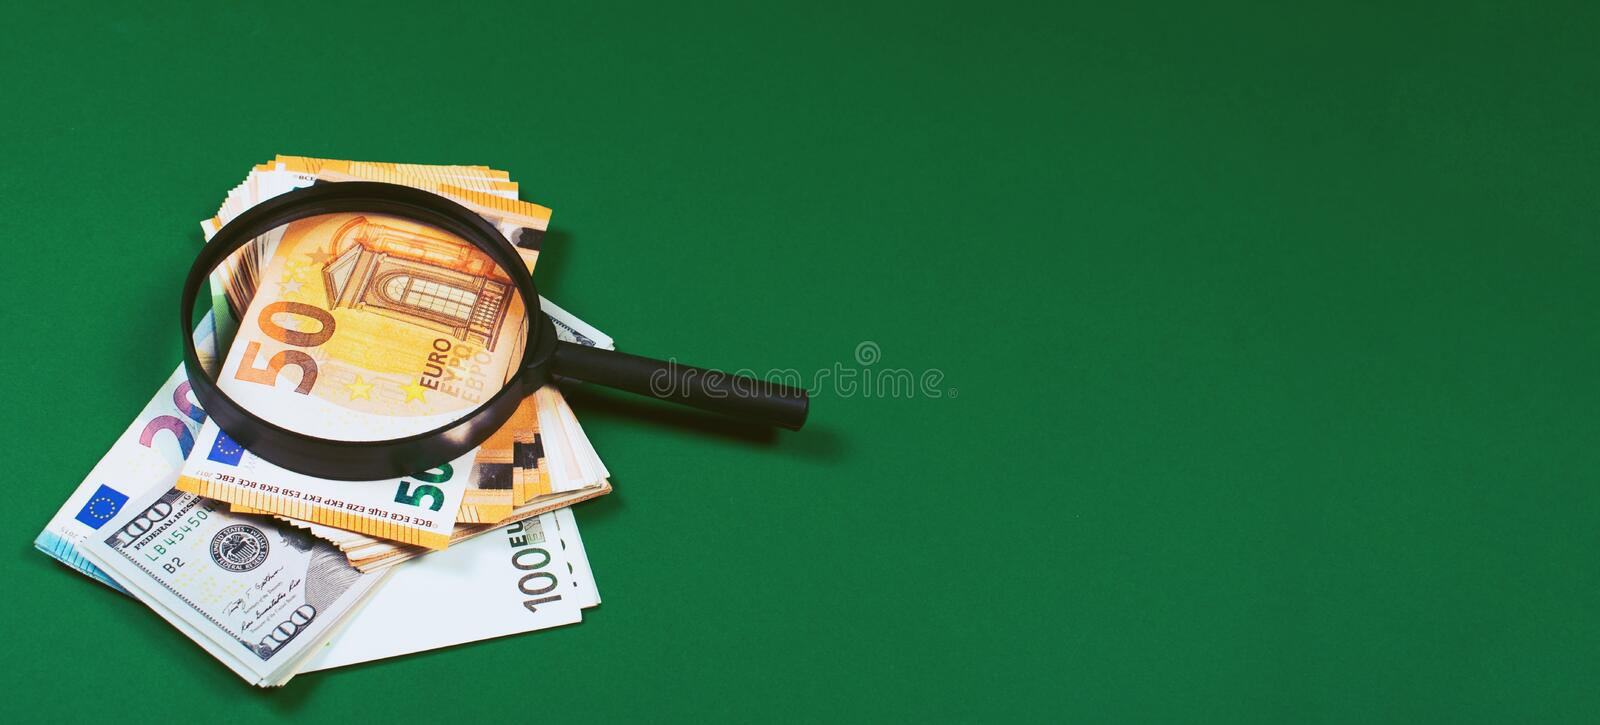 Money and magnifying glass on green background royalty free stock images